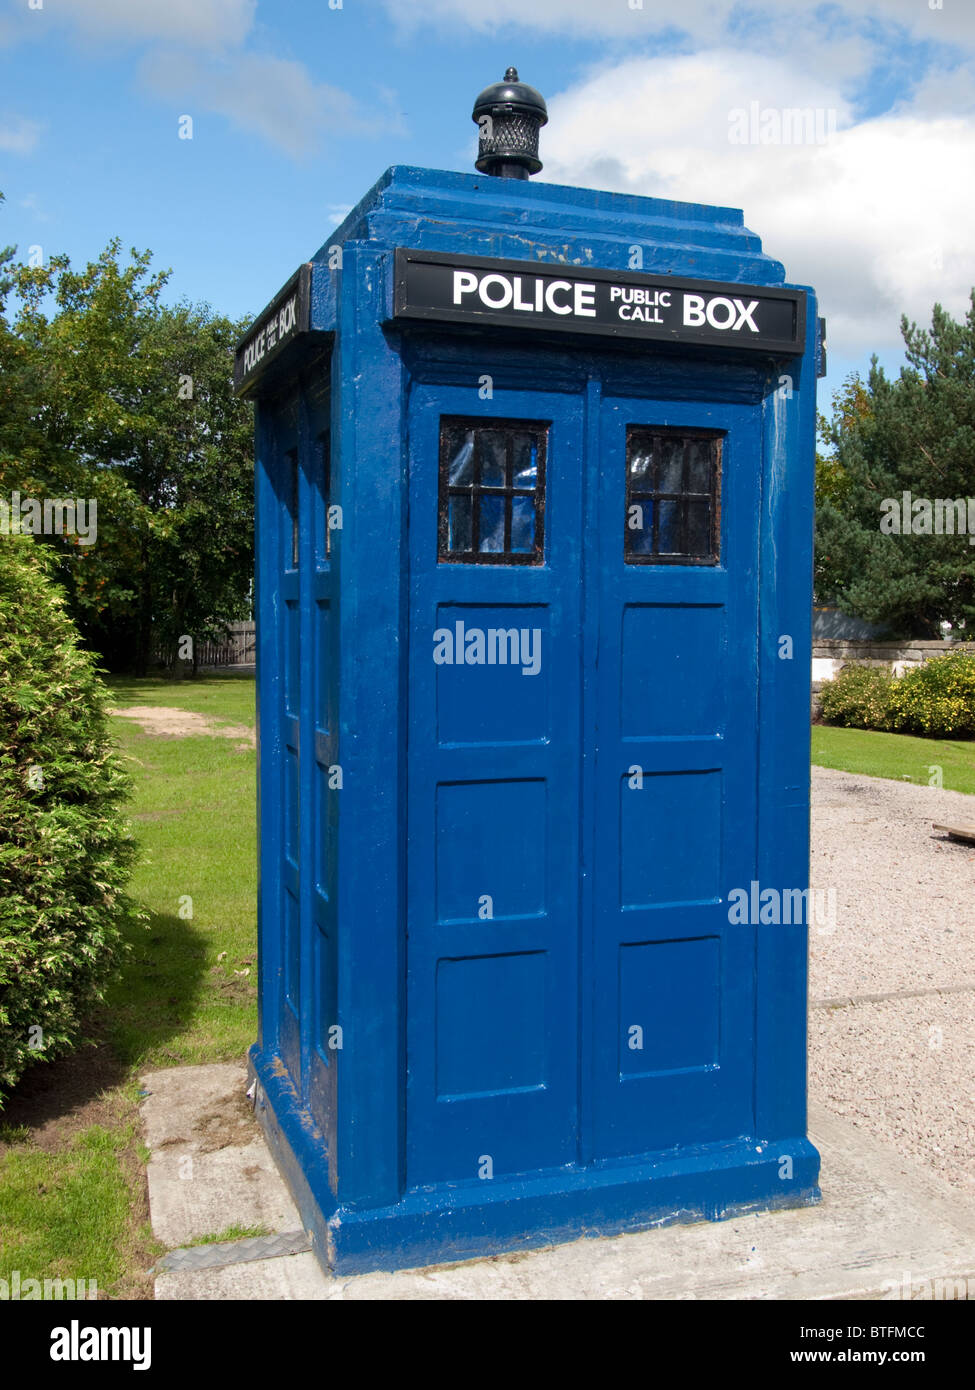 British Police Telephone Box - Stock Image